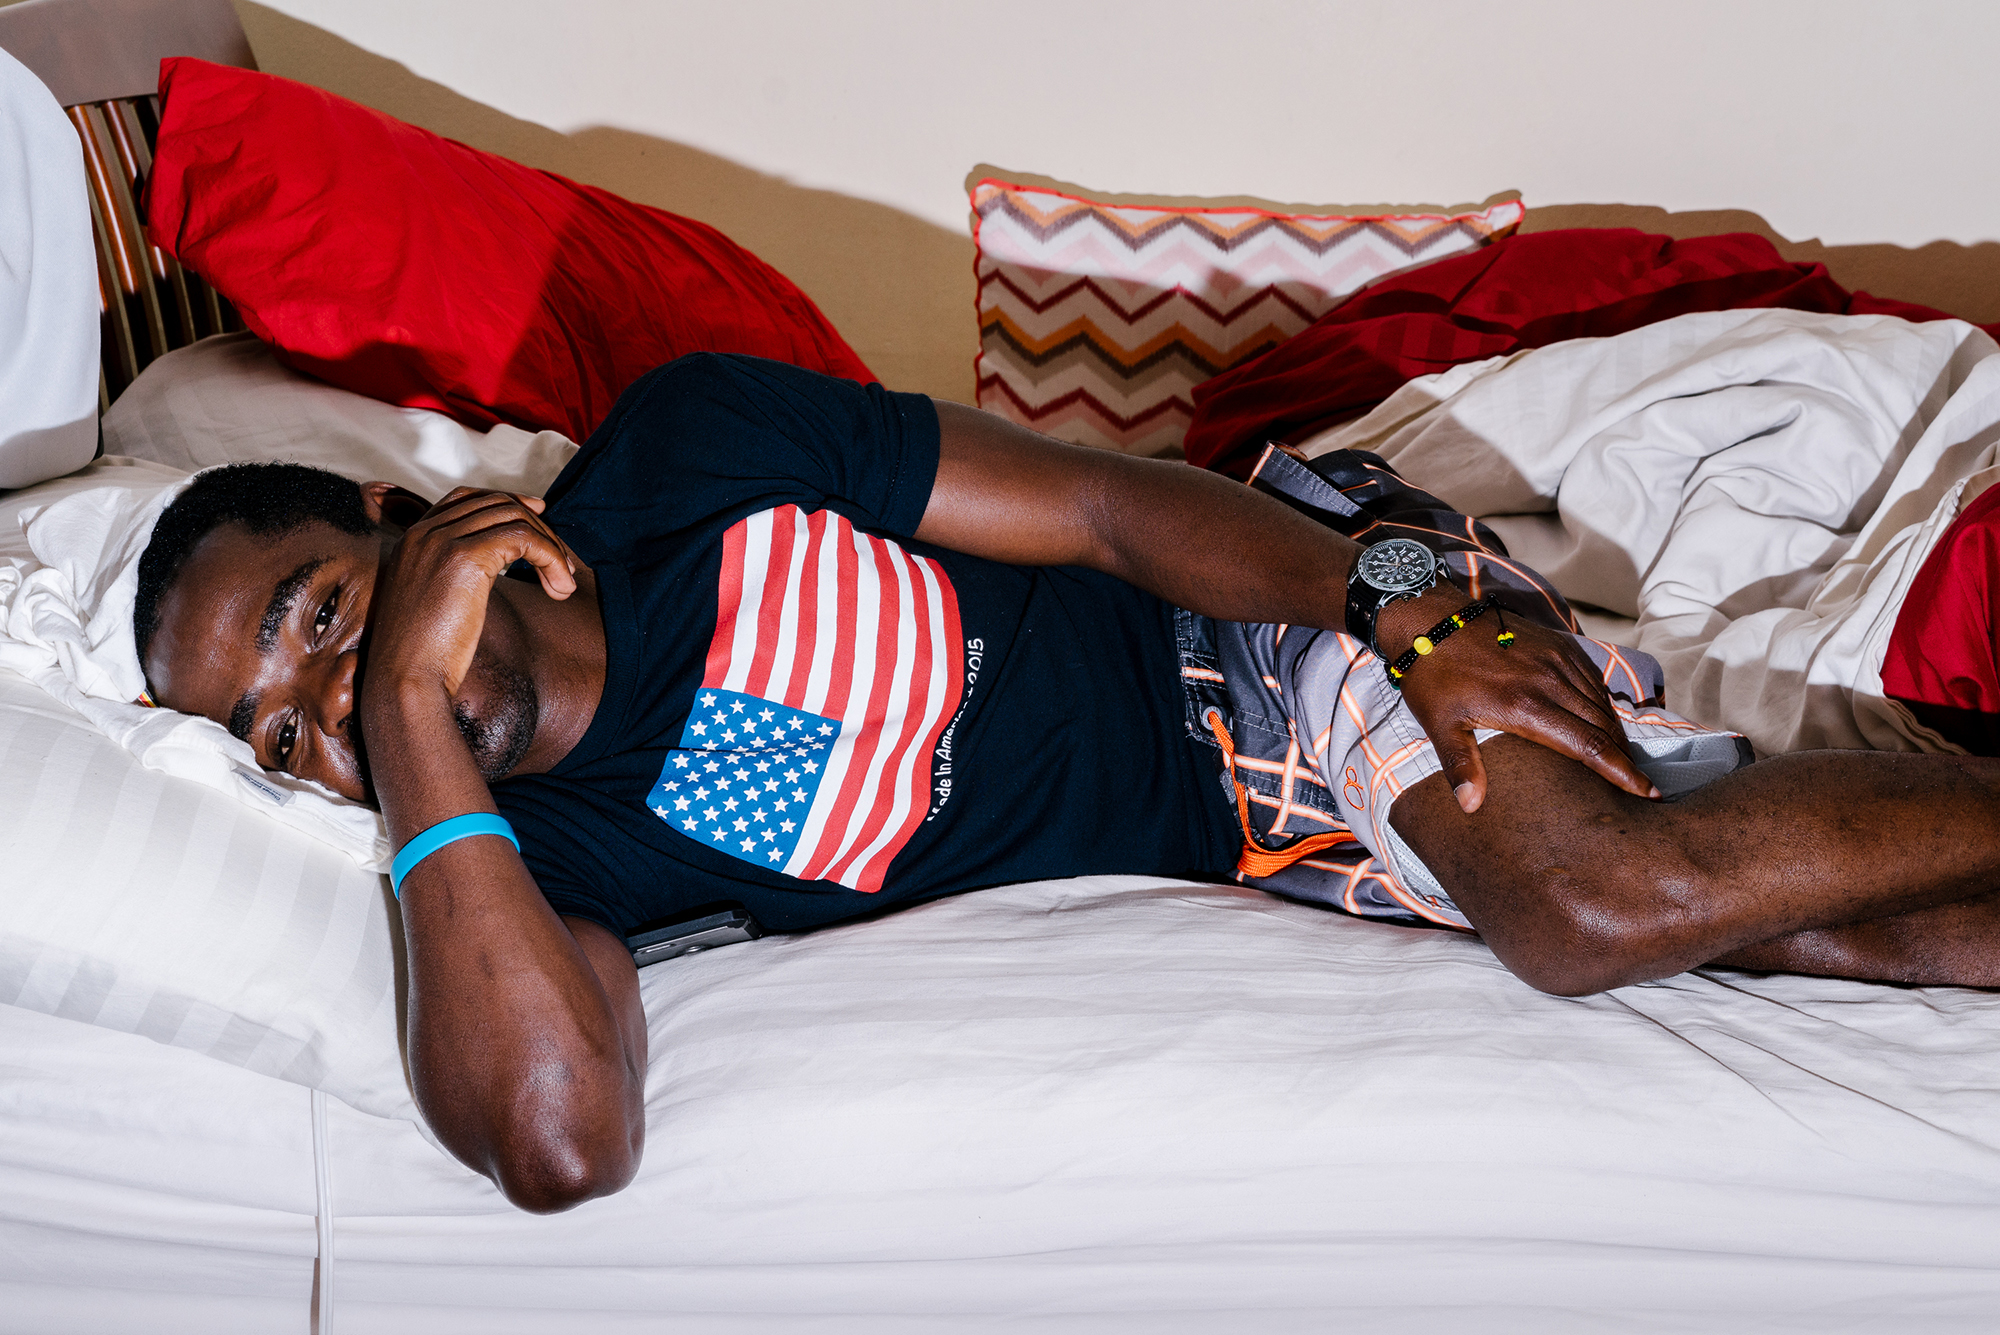 Shawn, a gay refugee from Uganda, lays in bed on Saturday, his one completely free day. He usually spends most of it catching up on sleep and doing chores. The rest of the week he works some 90 hours at two jobs, barely finding time to take a nap or do much of anything else.